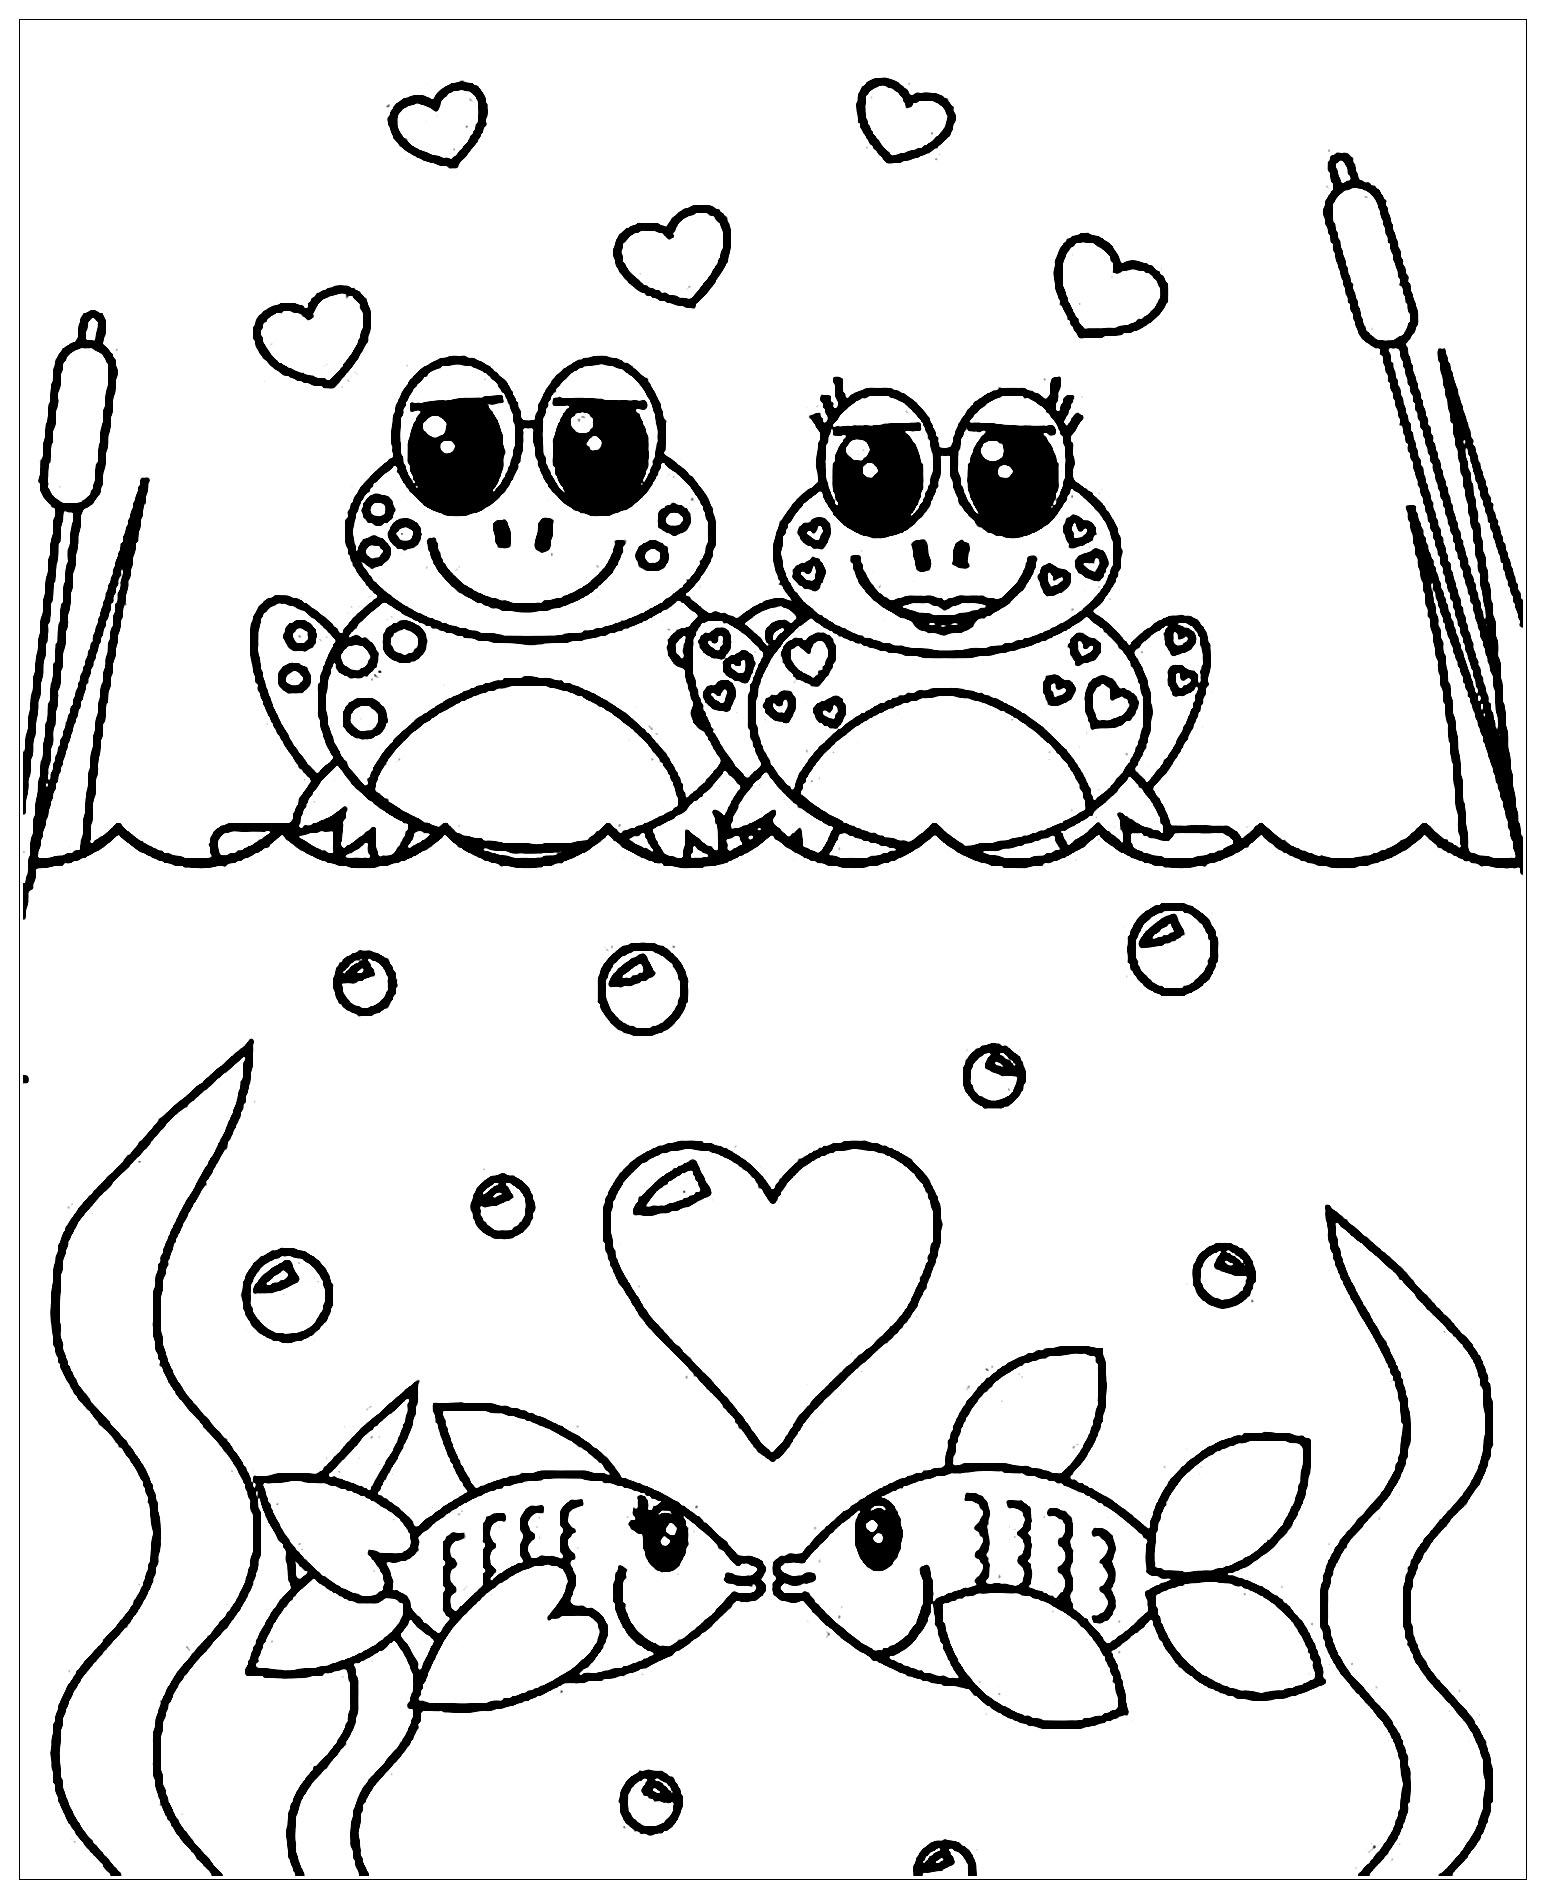 frogs coloring pages frogs coloring pages coloring pages frogs